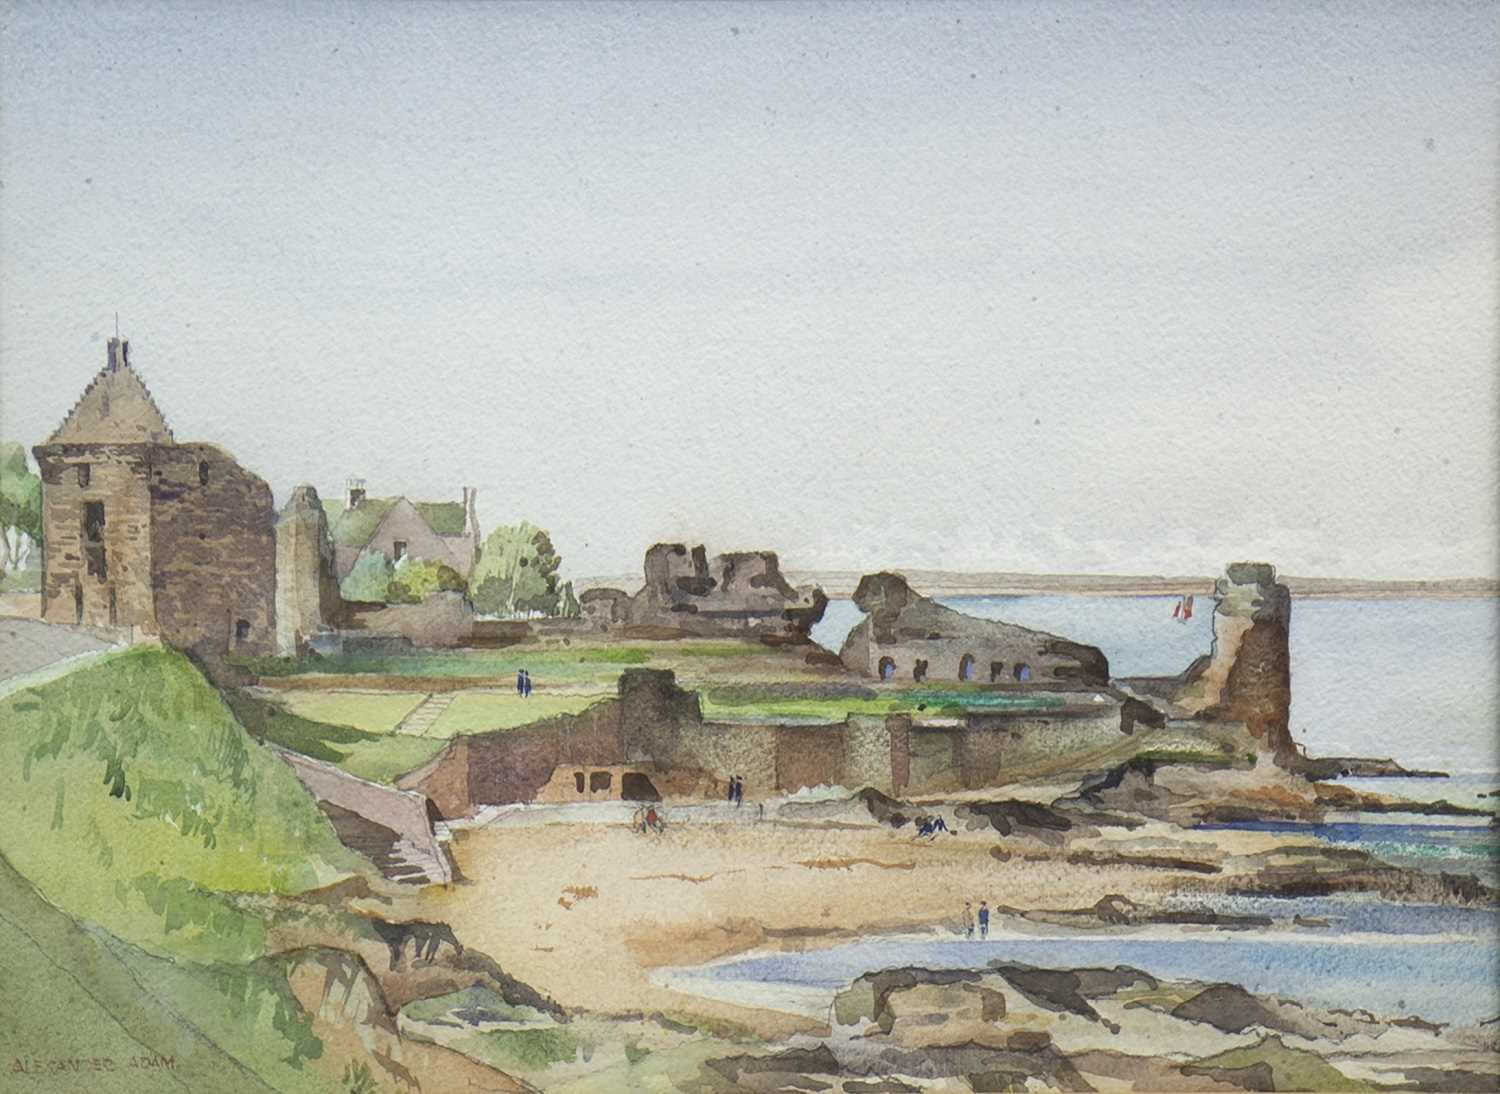 Lot 622-ST ANDREW'S ANBEY, A WATERCOLOUR BY ALEXANDER ADAM